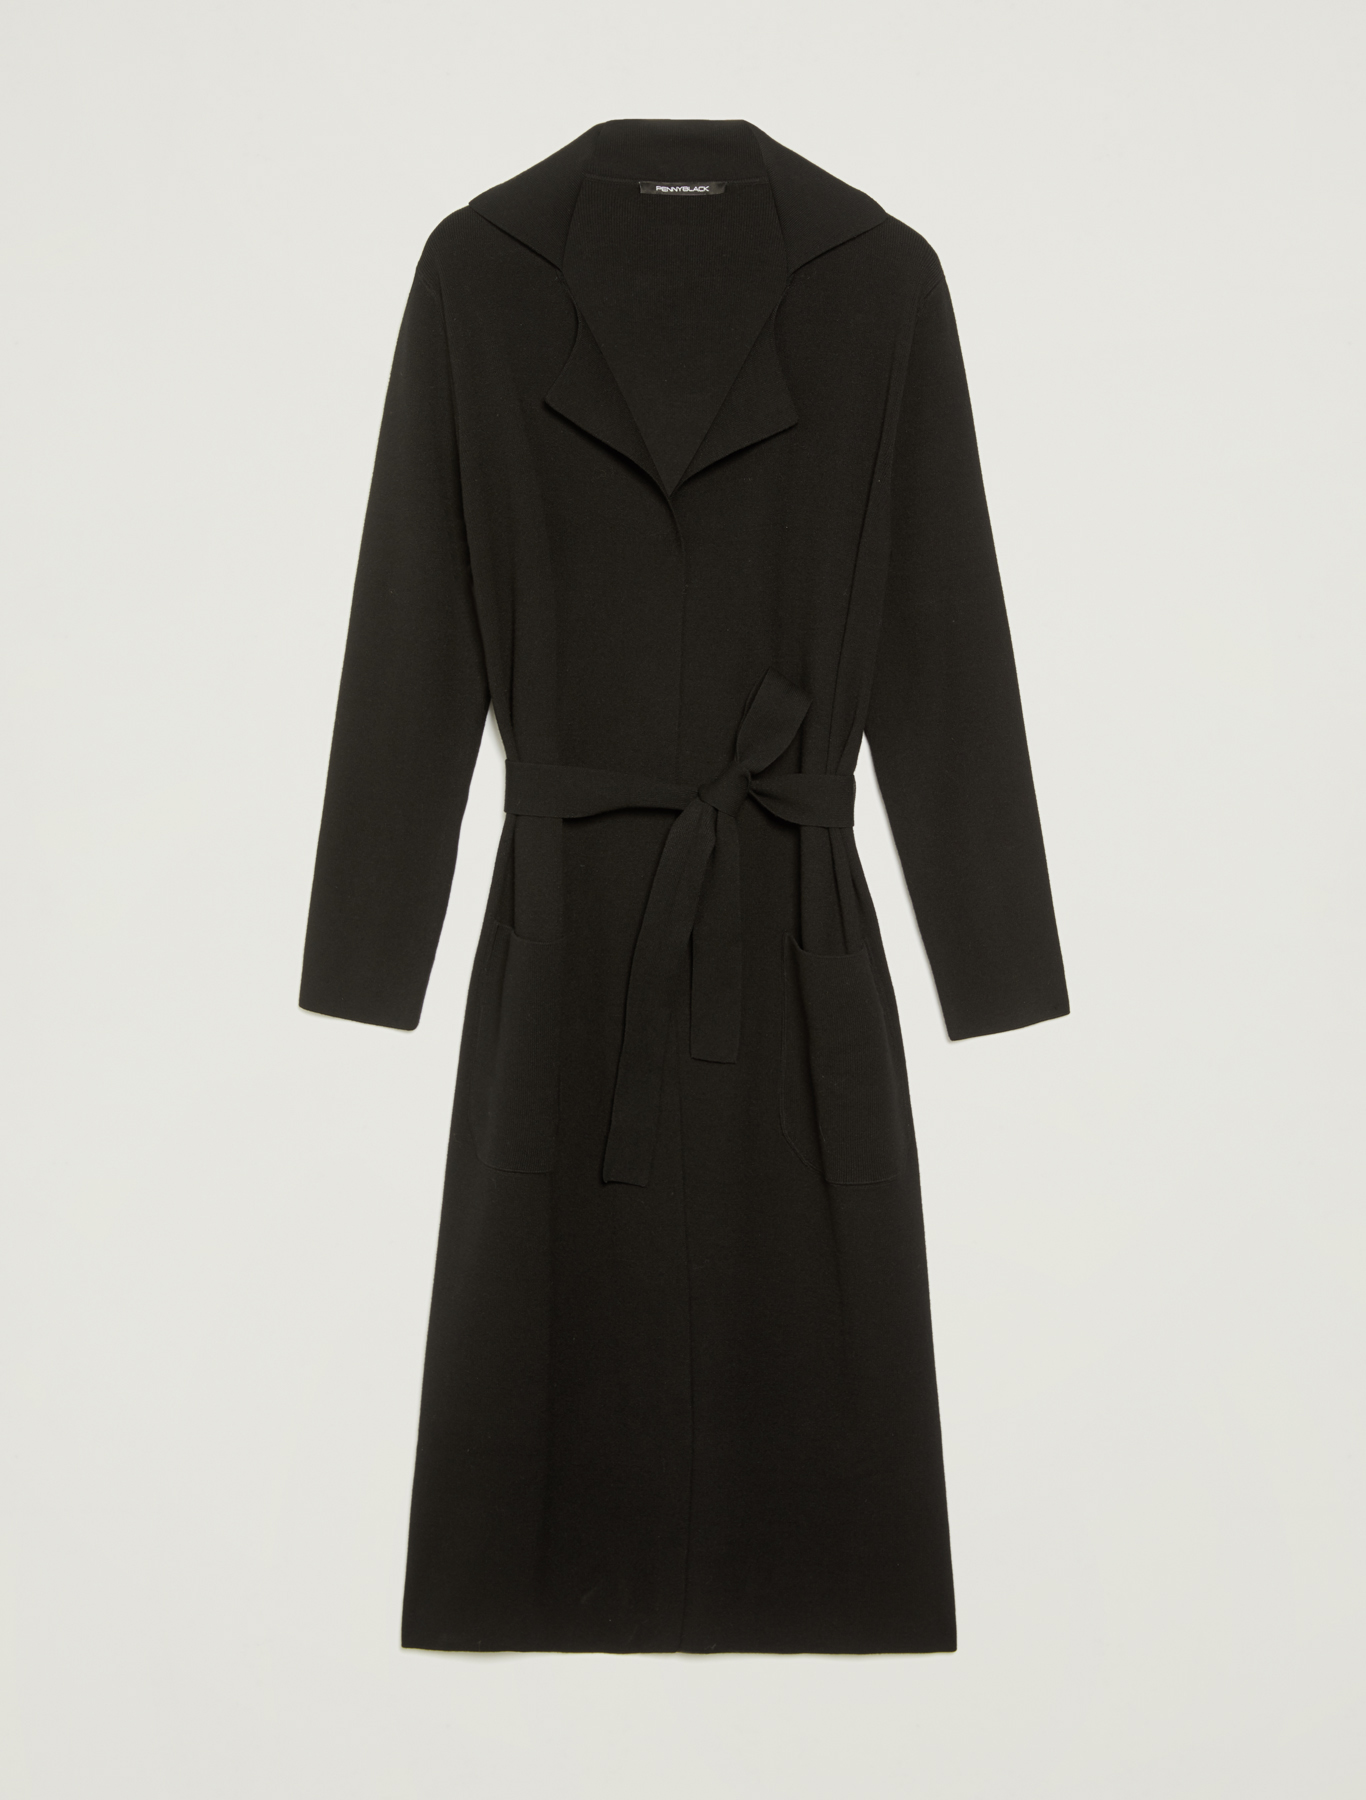 Cardigan with lapels and belt - black - pennyblack